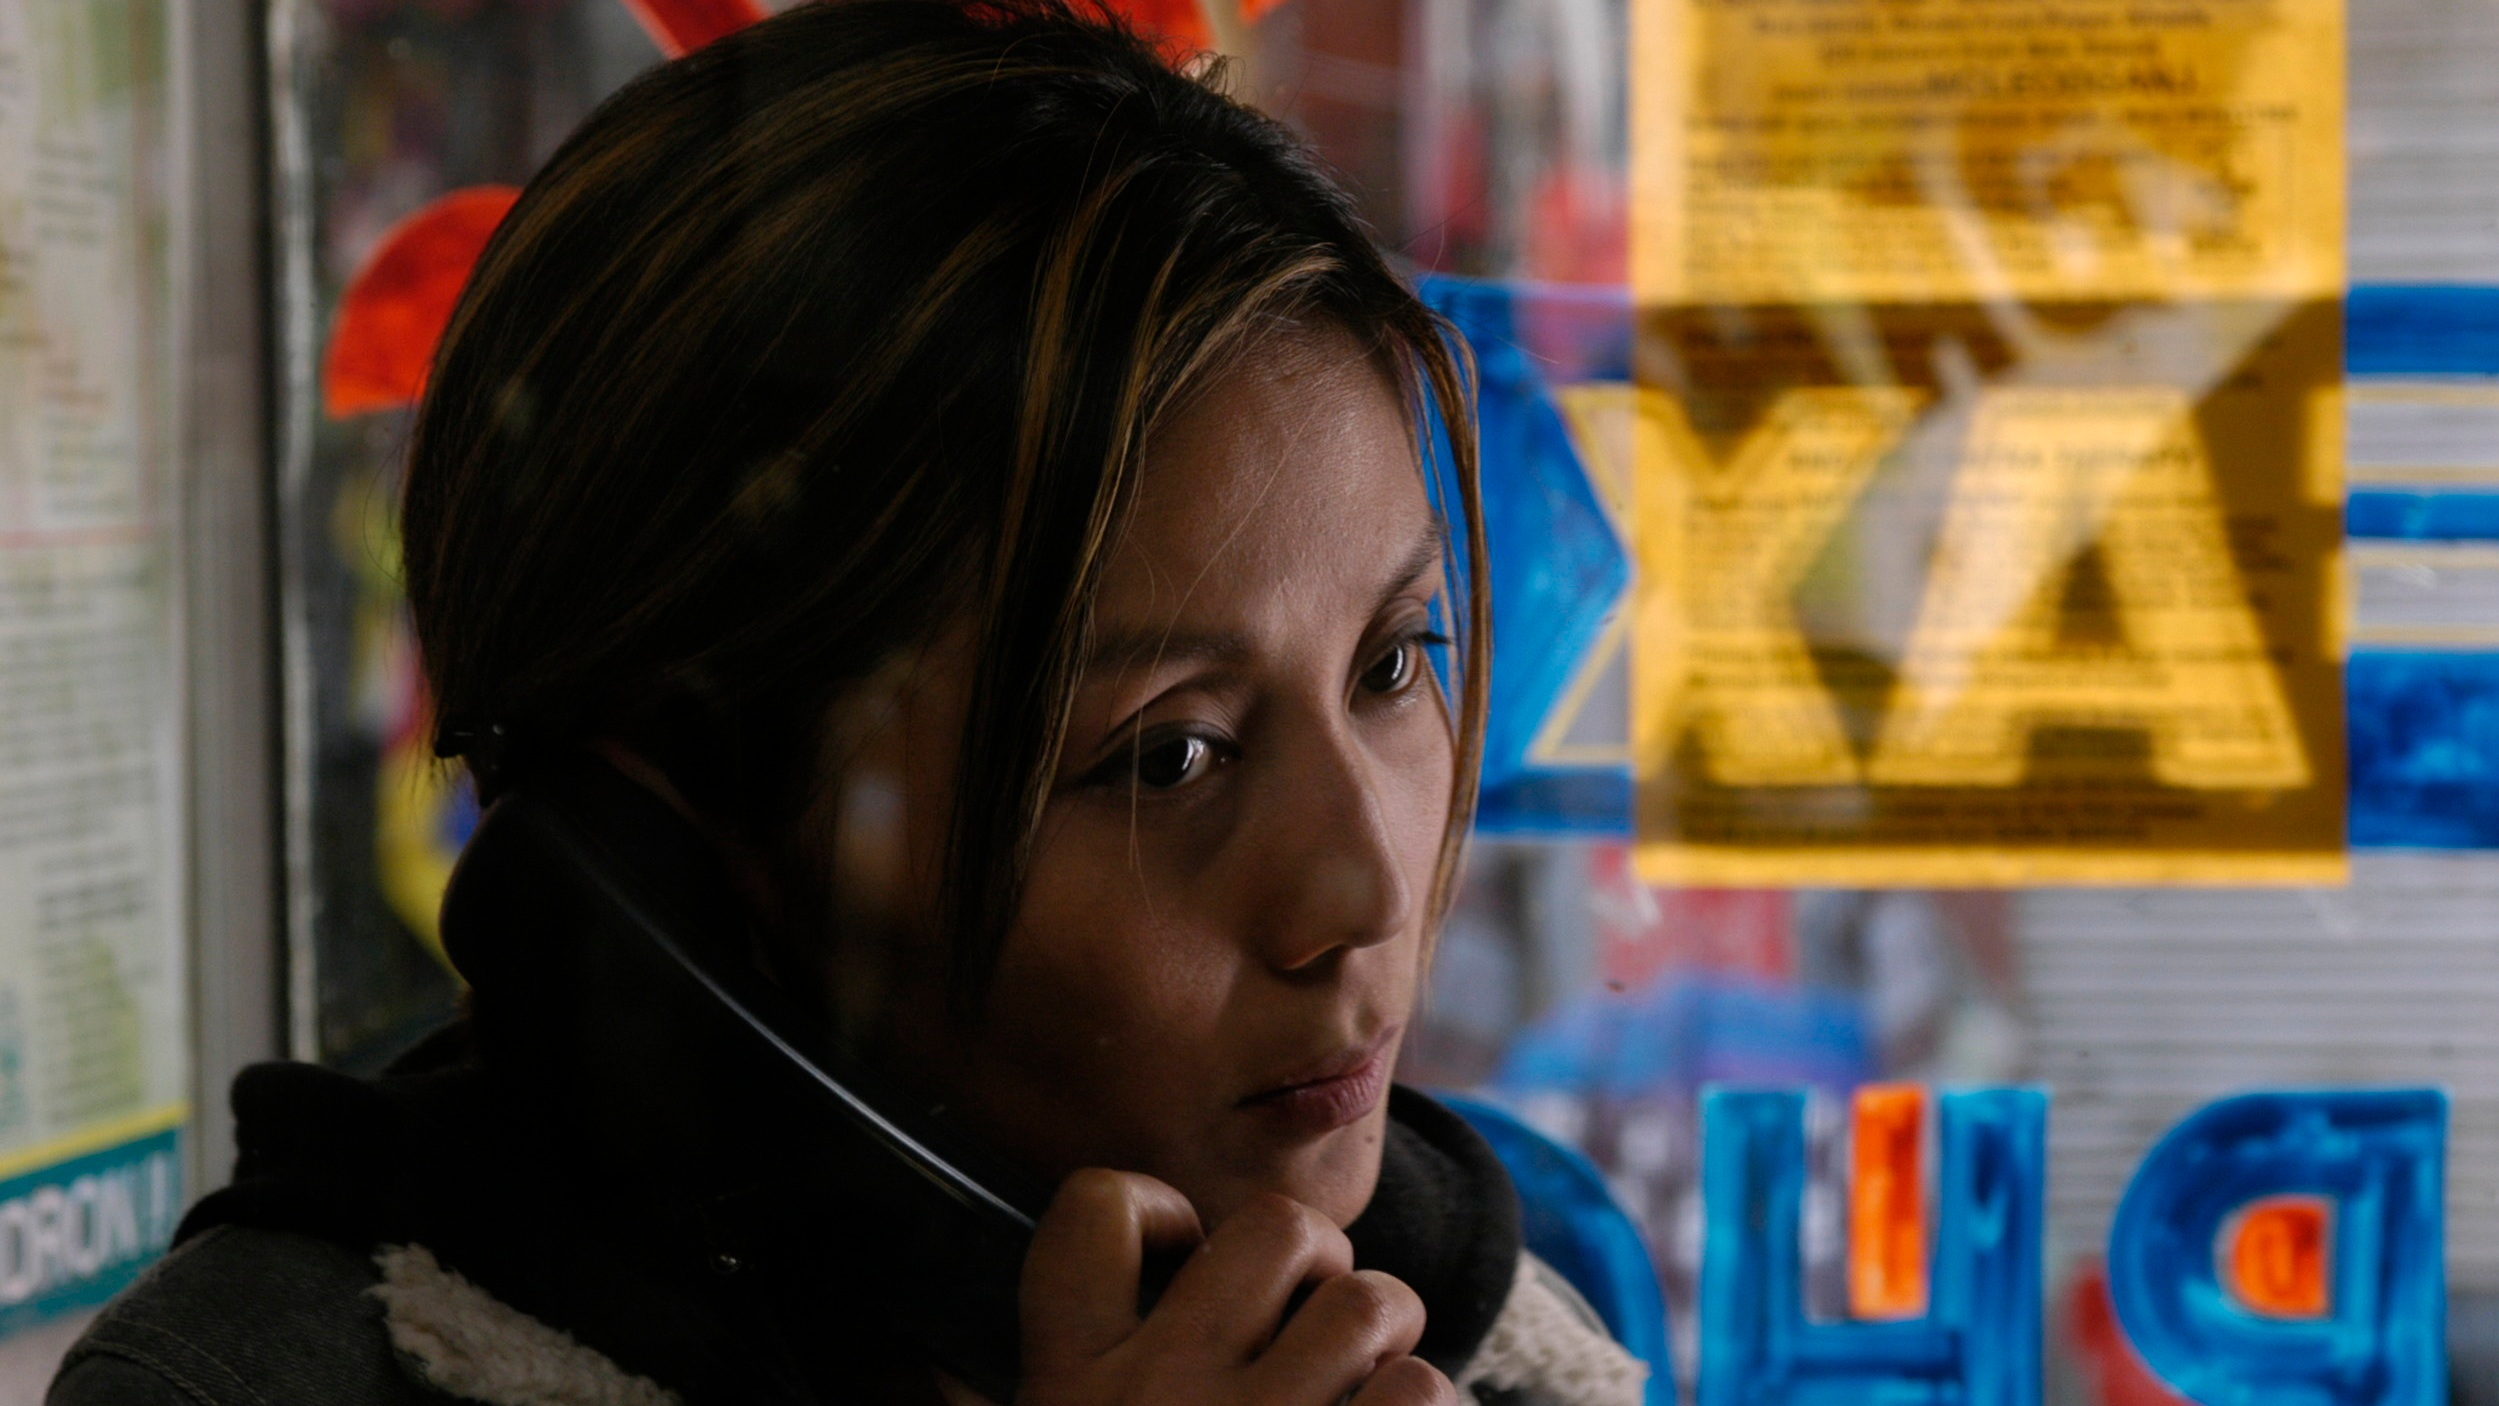 Dreaming Lhasa Tenzing Sonam, Ritu Sarin   2005   UK, India   Drama   90'   English, Tibetan with English subtitles Screenplay: Tenzing Sonam Actors: Tenzin Chokyi Gyatso, Jampa Kalsang, Tenzin Jigme, and others.    WATCH THE TRAILER   Karma, a Tibetan filmmaker from New York, travels to Dharamsala to make a documentary about former political prisoners who fled Tibet. Her desire is to connect with her roots, but at the same time she escapes a relationship that threatens to break up. Dhondup, a mysterious former monk, is one of the people she wants to portray in the film. He confides to her that his real reason for coming to India is to fulfill his dying mother's last wish, namely to deliver a lucky charm to a resistance fighter who has long been considered missing. Karma has to experience how she falls in love with Dhondup and is drawn into the passion of his mission. She embarks on a journey into the past of Tibet and into herself.